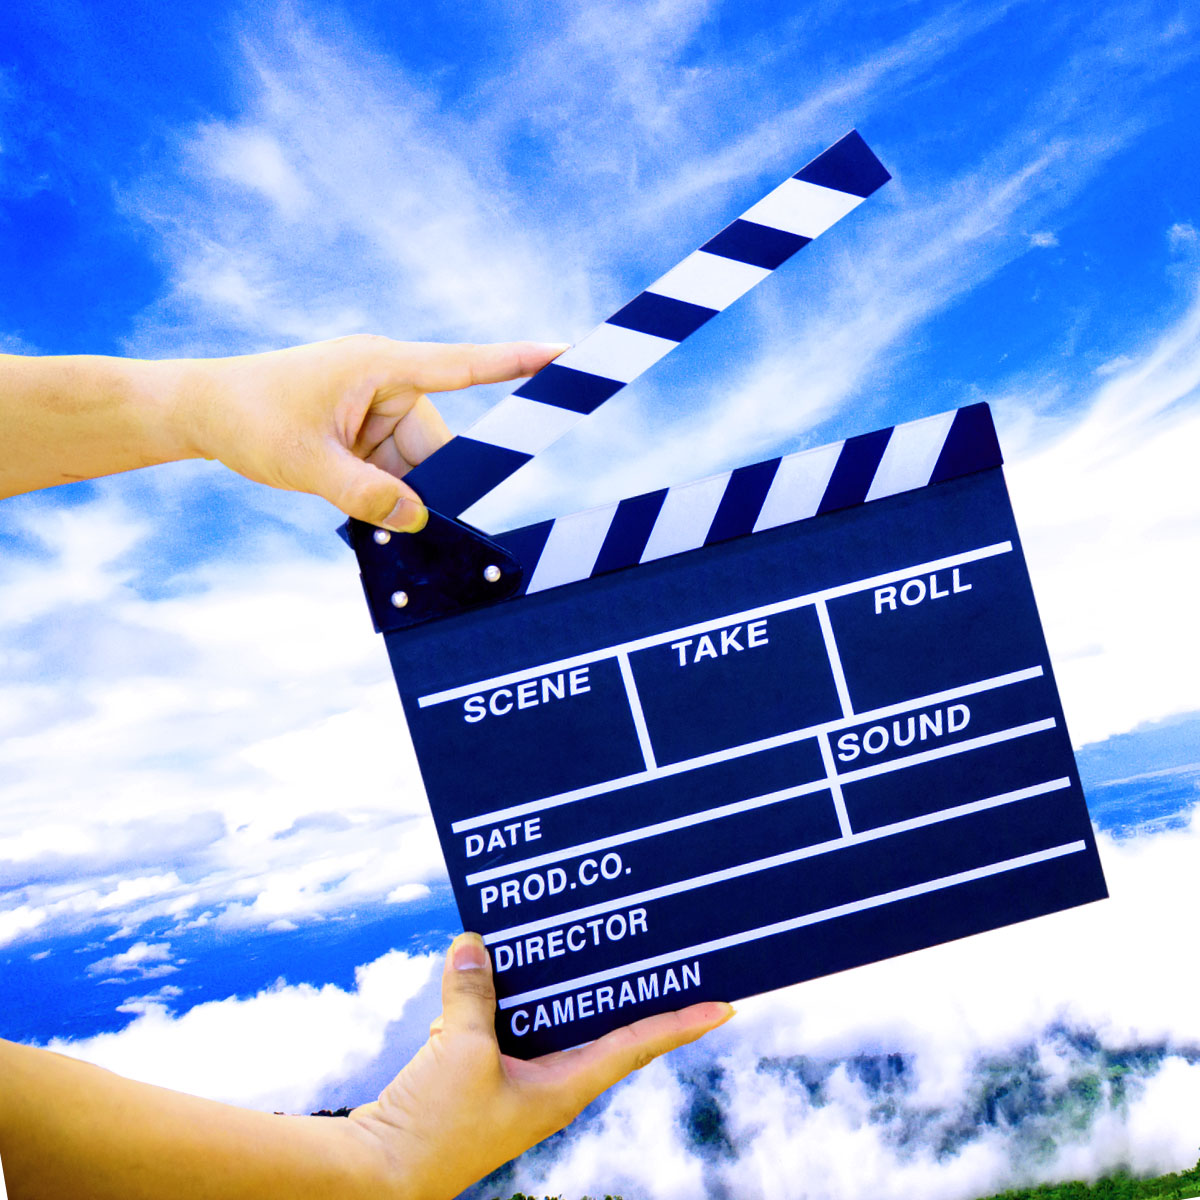 Movie slate in front of a blue sky